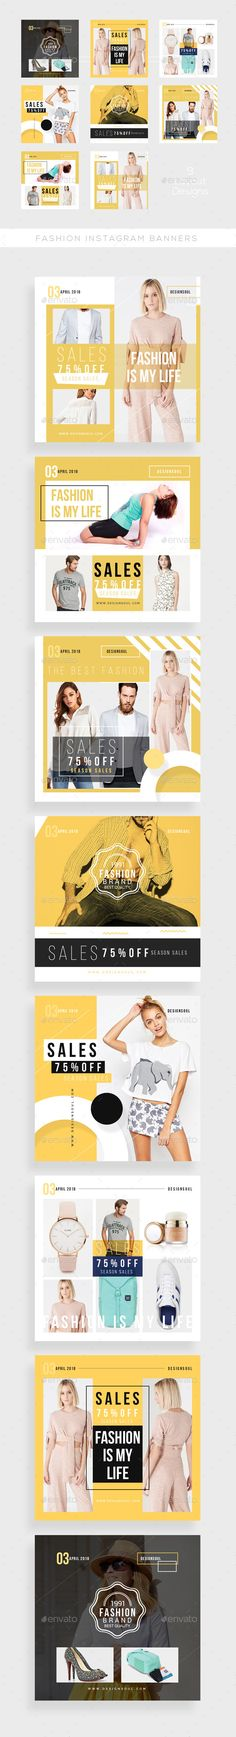 Fashion Instagram Banners — Photoshop PSD #promotional #promotions • Download ➝ https://graphicriver.net/item/fashion-instagram-banners/21159148?ref=pxcr